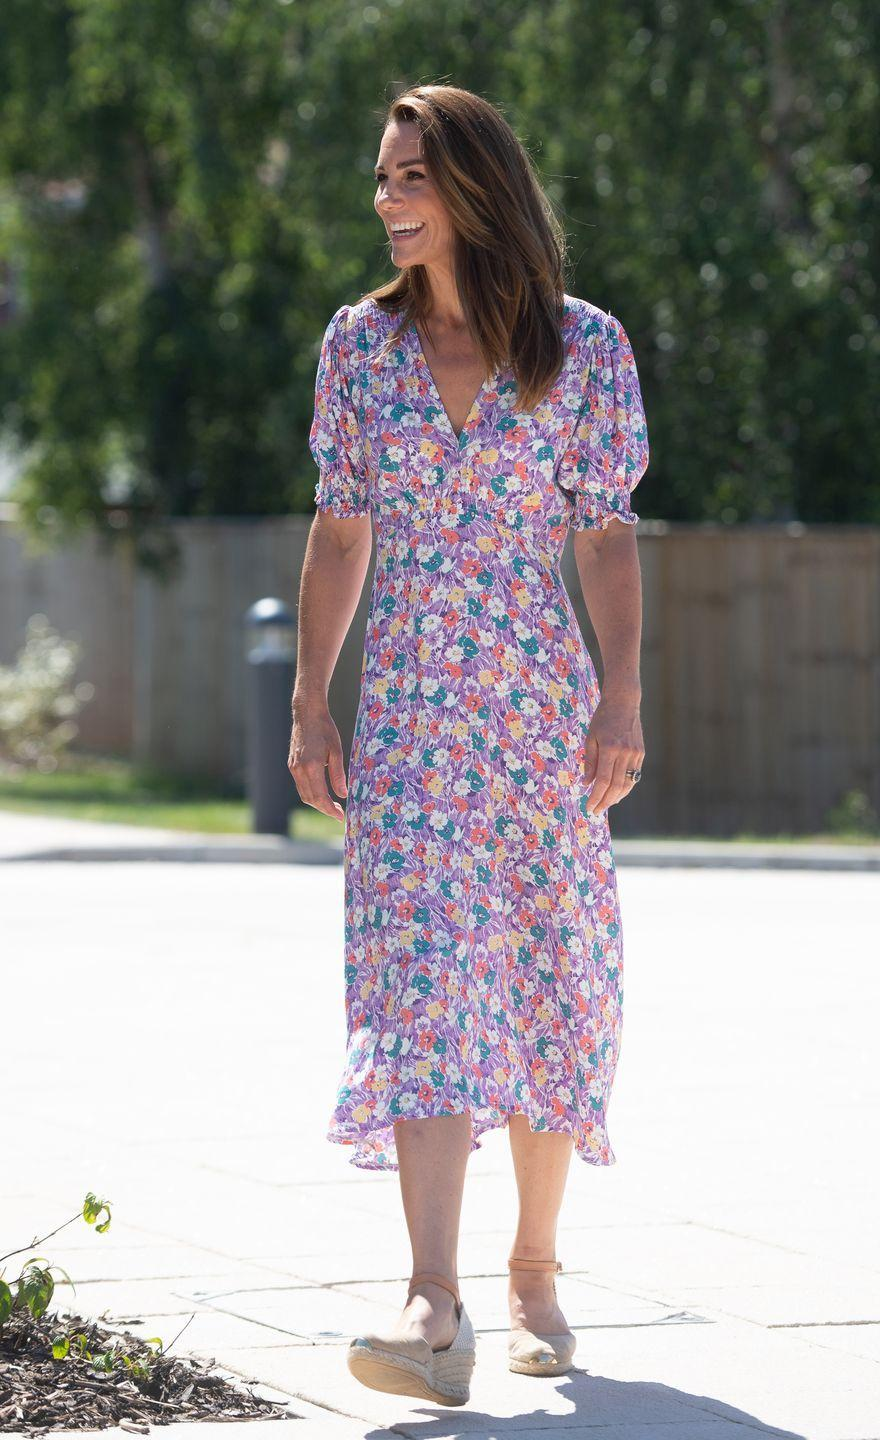 """<p>Duchess Kate looked summery and chic in a lavender, floral <a href=""""https://www.net-a-porter.com/en-us/shop/product/faithfull-the-brand/marie-louise-floral-print-crepe-midi-dress/1233974"""" rel=""""nofollow noopener"""" target=""""_blank"""" data-ylk=""""slk:midi dress"""" class=""""link rapid-noclick-resp"""">midi dress </a>by Faithfull the Brand and tan <a href=""""https://www.russellandbromley.co.uk/coco-nut/431707"""" rel=""""nofollow noopener"""" target=""""_blank"""" data-ylk=""""slk:Russell & Bromley espadrilles"""" class=""""link rapid-noclick-resp"""">Russell & Bromley espadrilles</a>. Kate wore this outfit to <a href=""""https://www.townandcountrymag.com/society/tradition/a32990521/kate-middleton-prince-louis-green-thumb-comment/"""" rel=""""nofollow noopener"""" target=""""_blank"""" data-ylk=""""slk:visit her patronage"""" class=""""link rapid-noclick-resp"""">visit her patronage</a>, the Nook in Framlingham Earl, Norfolk, one of three East Anglia's Children's Hospices.</p><p><a class=""""link rapid-noclick-resp"""" href=""""https://go.redirectingat.com?id=74968X1596630&url=https%3A%2F%2Fwww.saksfifthavenue.com%2Fsearch%2FEndecaSearch.jsp%3FbmText%3DSearchString%26N_Dim%3D0%26Ntk%3DEntire%2BSite%26Ntt%3DFaithfull%2Bthe%2BBrand&sref=https%3A%2F%2Fwww.redbookmag.com%2Flife%2Fg34824194%2Fkate-middleton-fashion%2F"""" rel=""""nofollow noopener"""" target=""""_blank"""" data-ylk=""""slk:Shop Faithfull the Brand"""">Shop Faithfull the Brand</a></p>"""